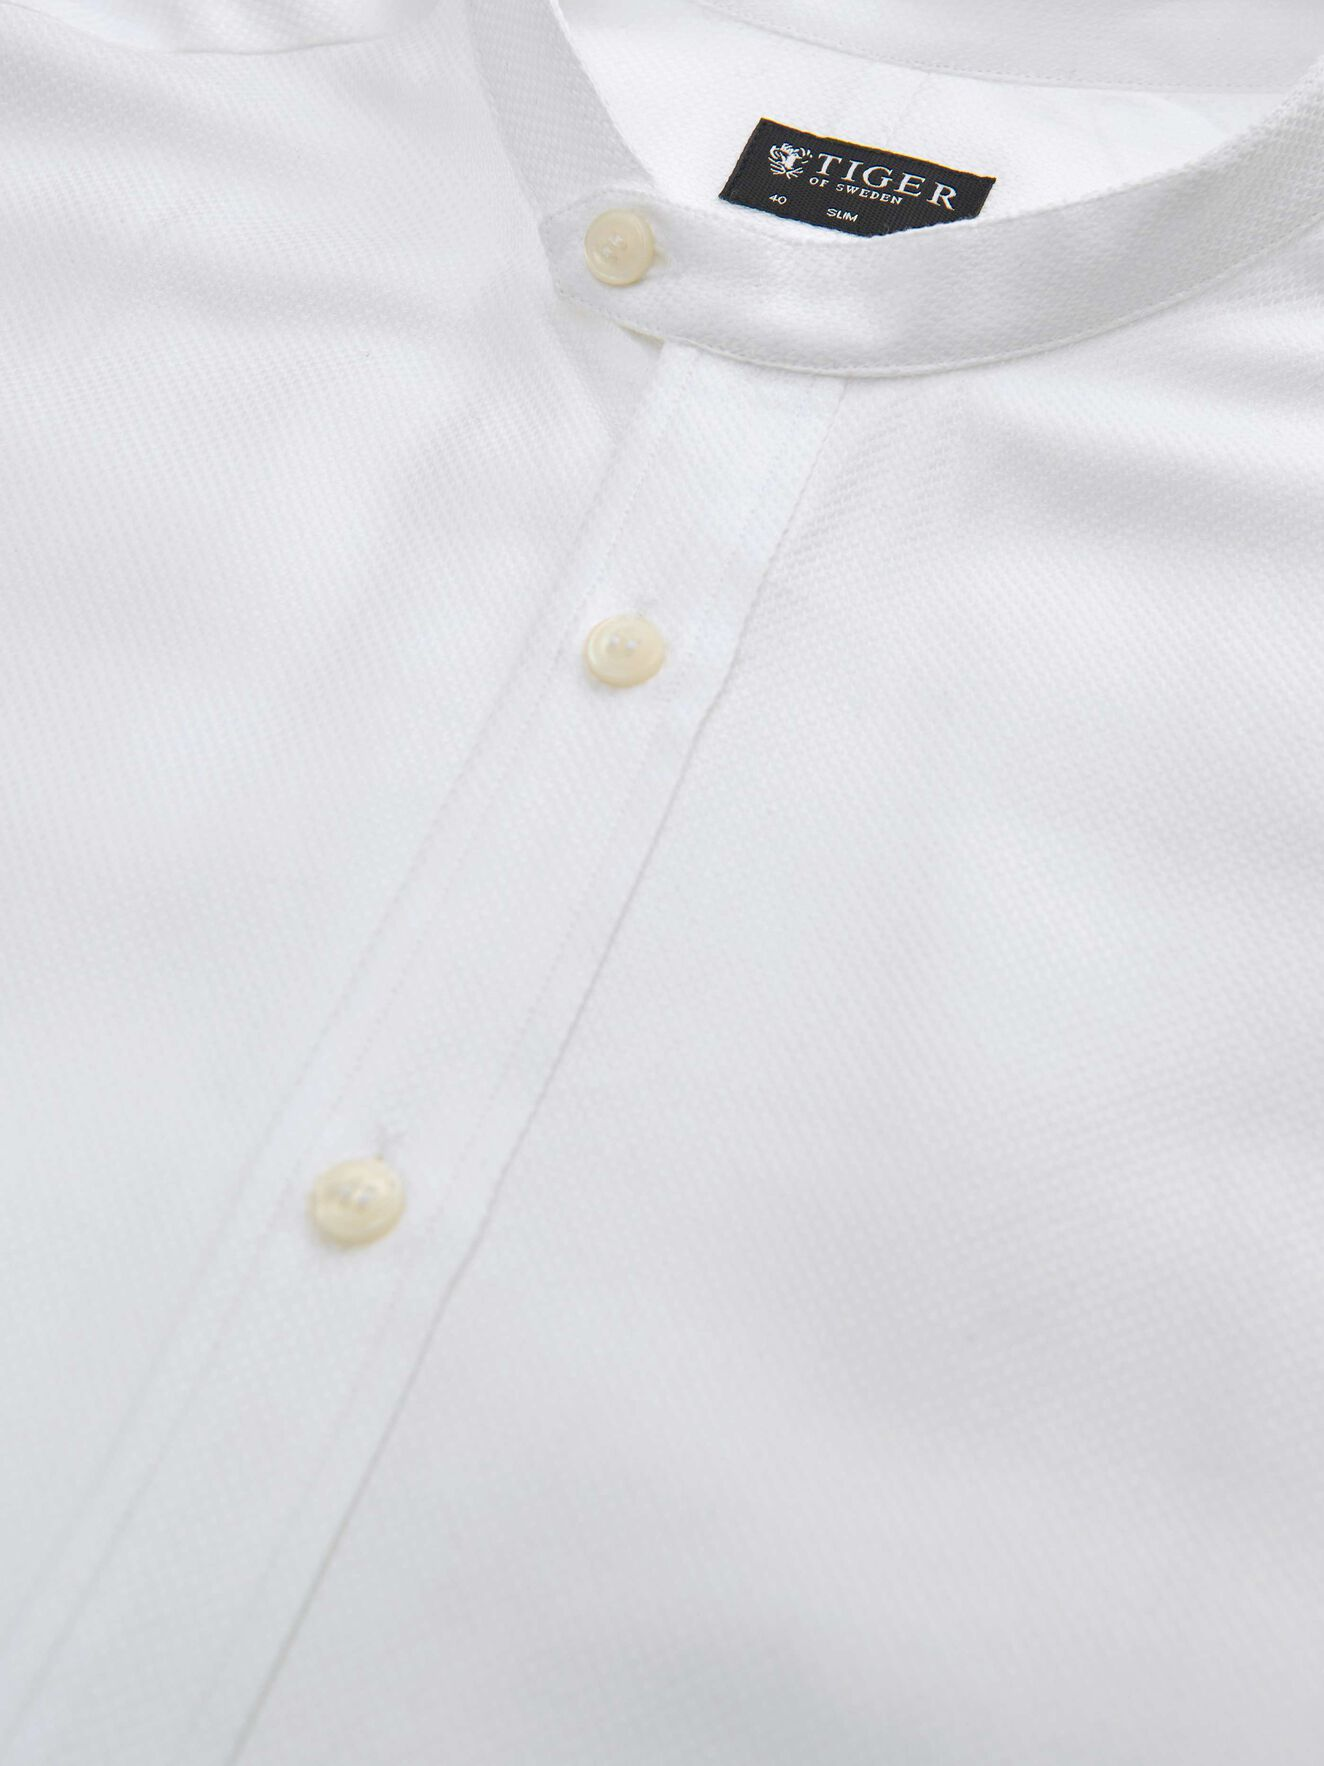 Ferante Shirt in Pure white from Tiger of Sweden